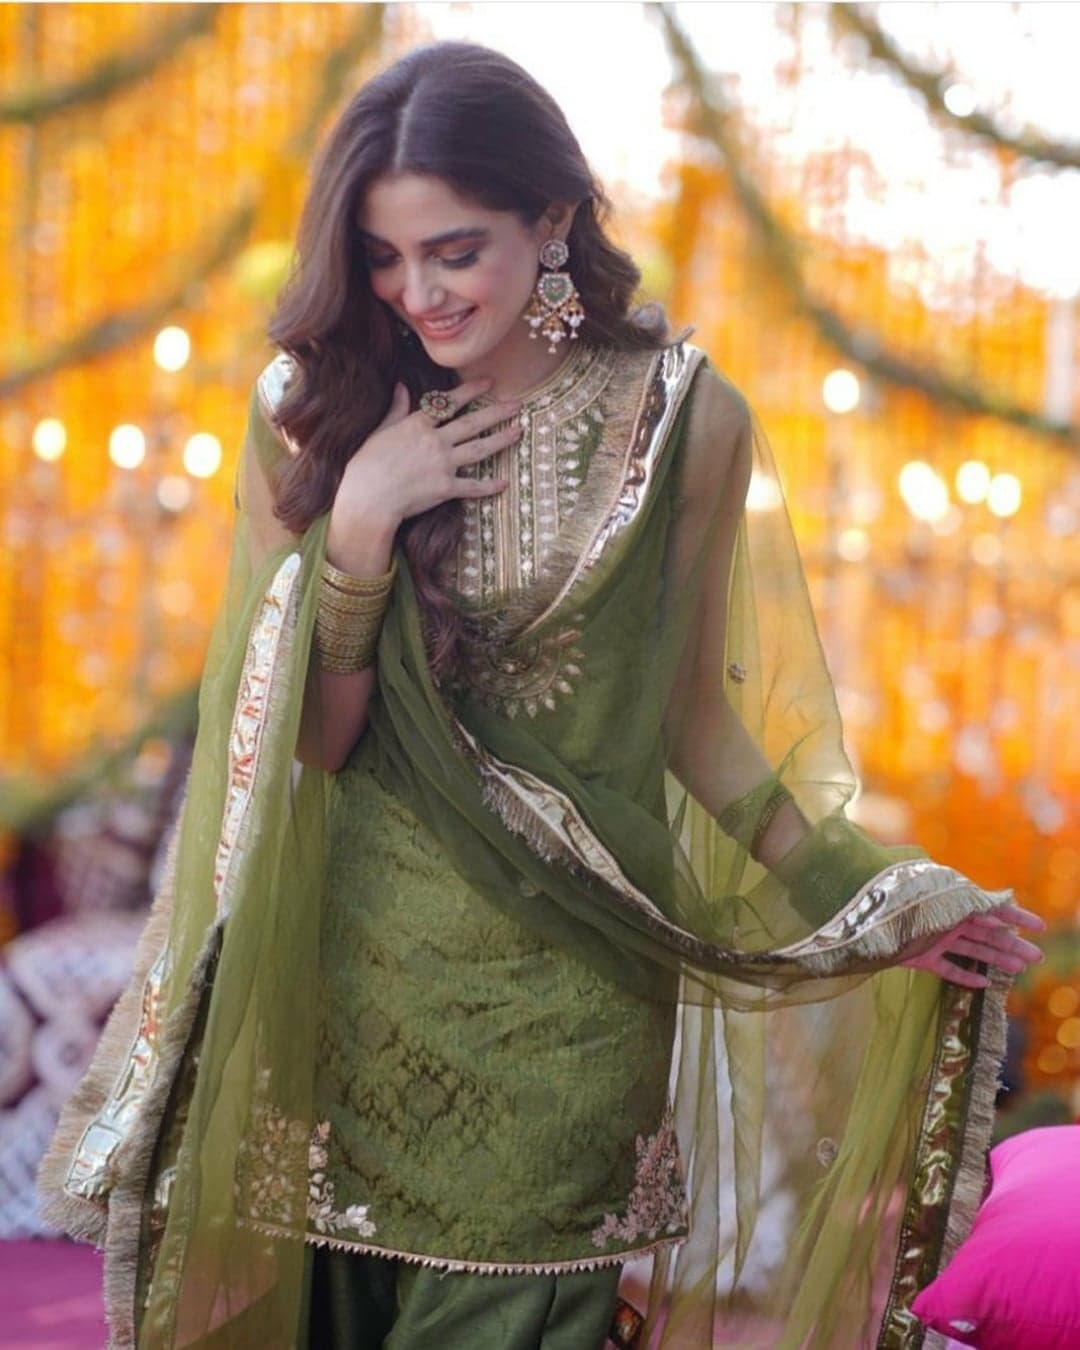 Maya Ali Proves She Can Wear Anything To Look Hot and Stunning!